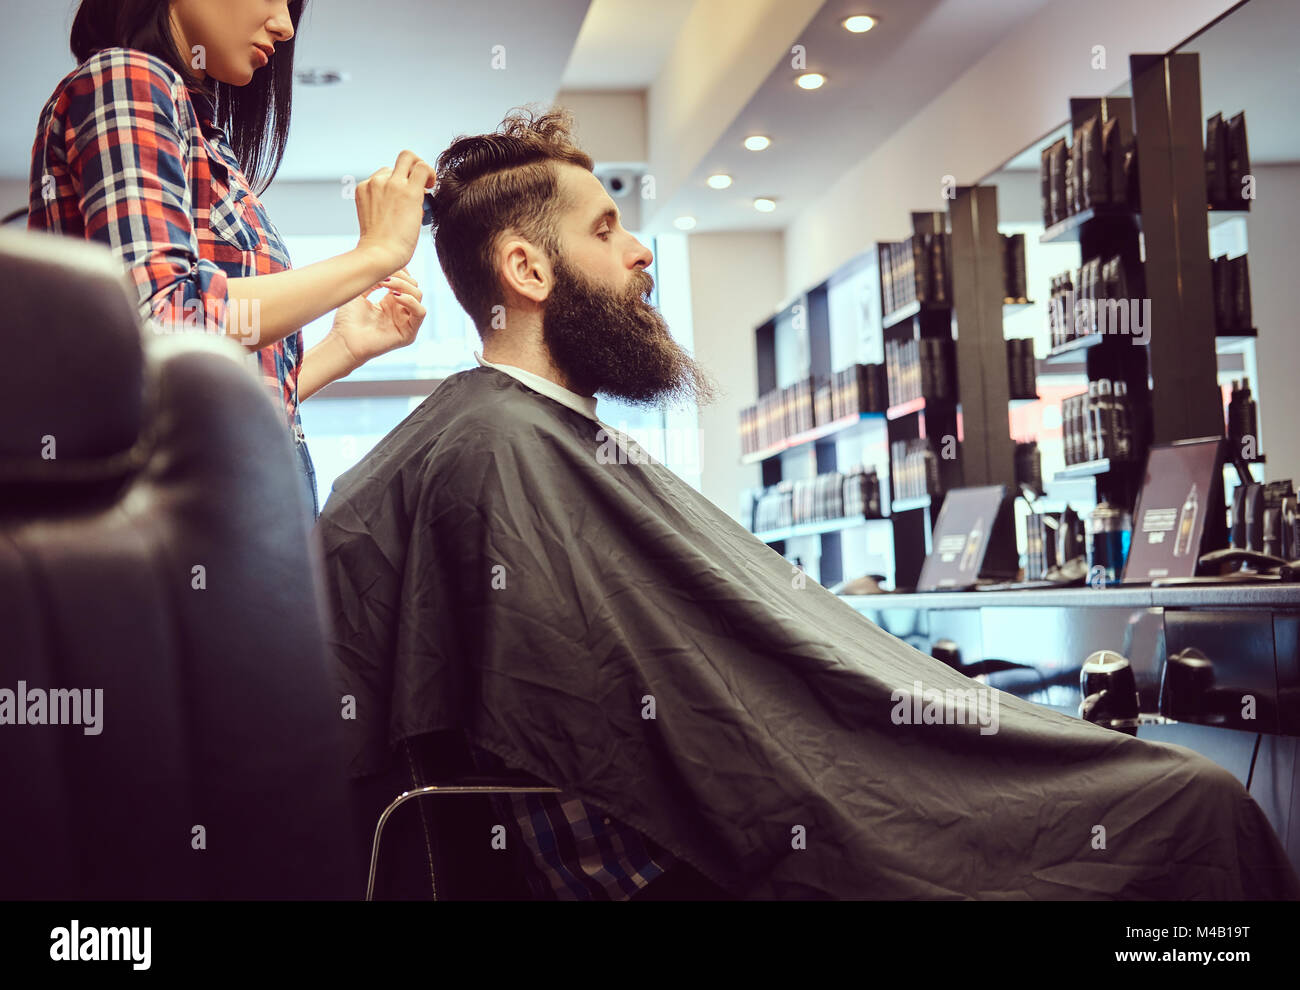 Handsome bearded man in the barbershop. - Stock Image